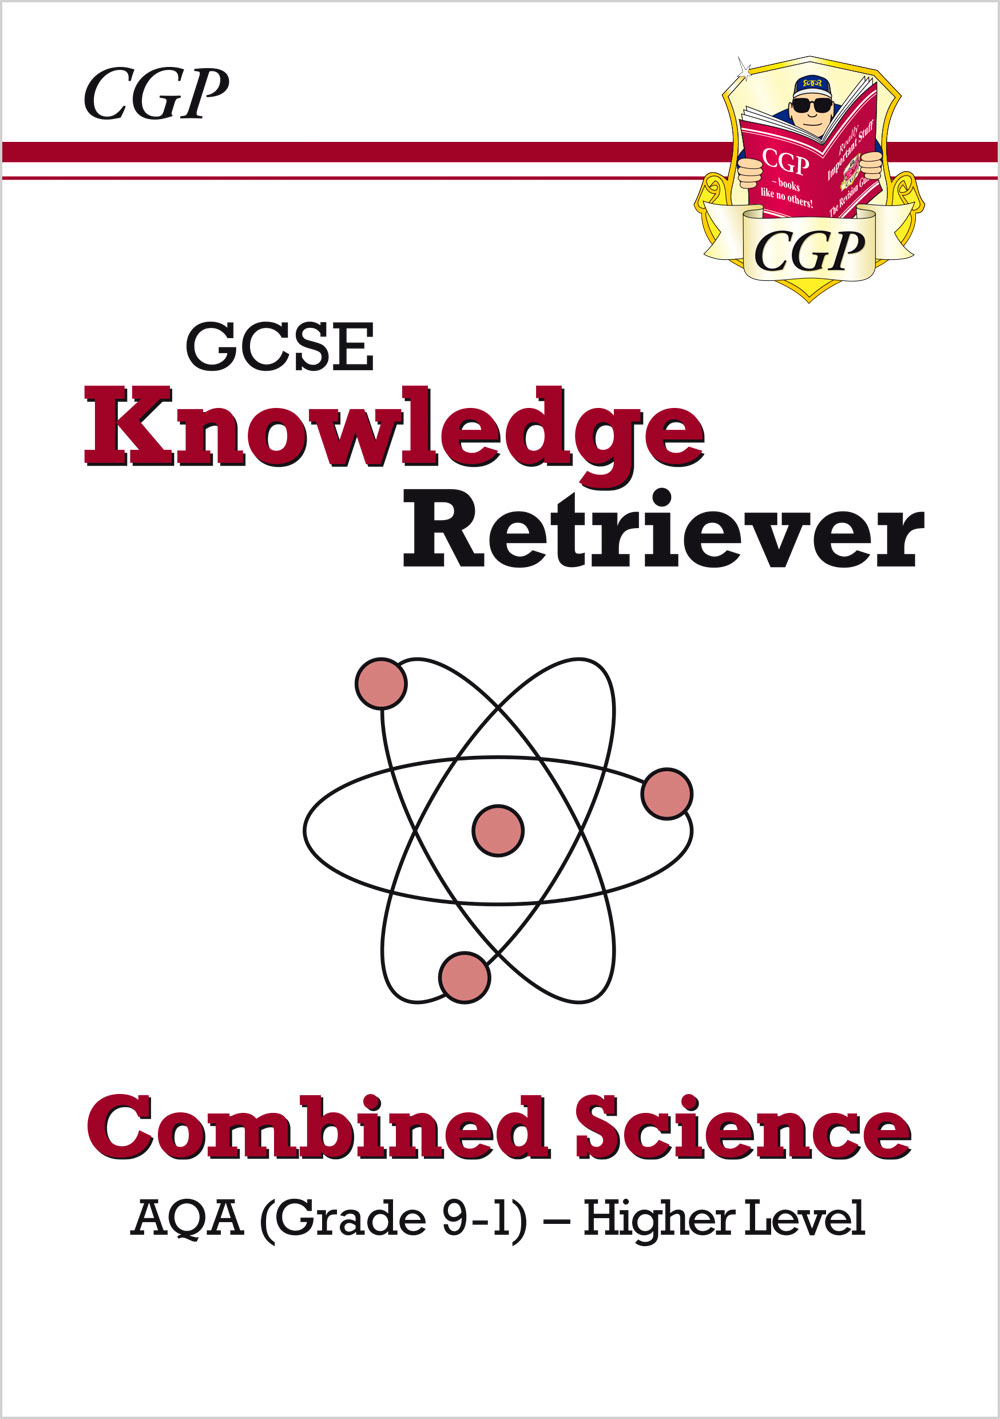 SCAHNR41 - New GCSE Knowledge Retriever: AQA Combined Science - Higher (Grade 9-1)